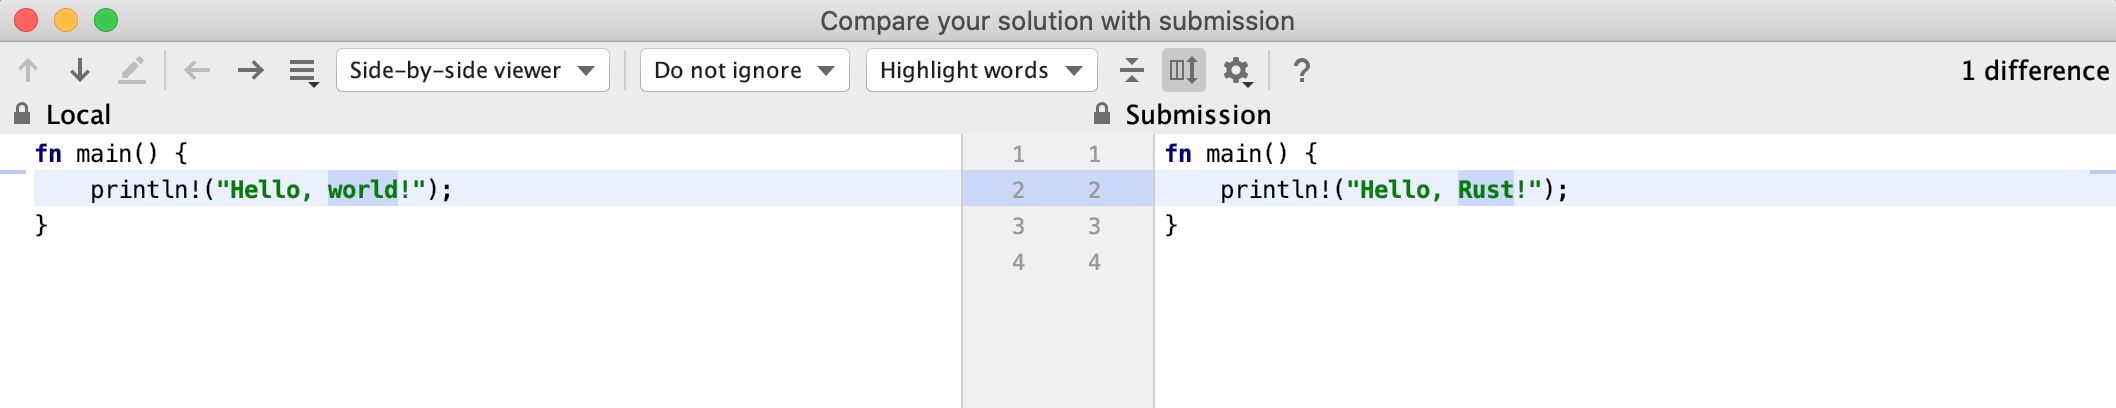 edu submissions diff rust png